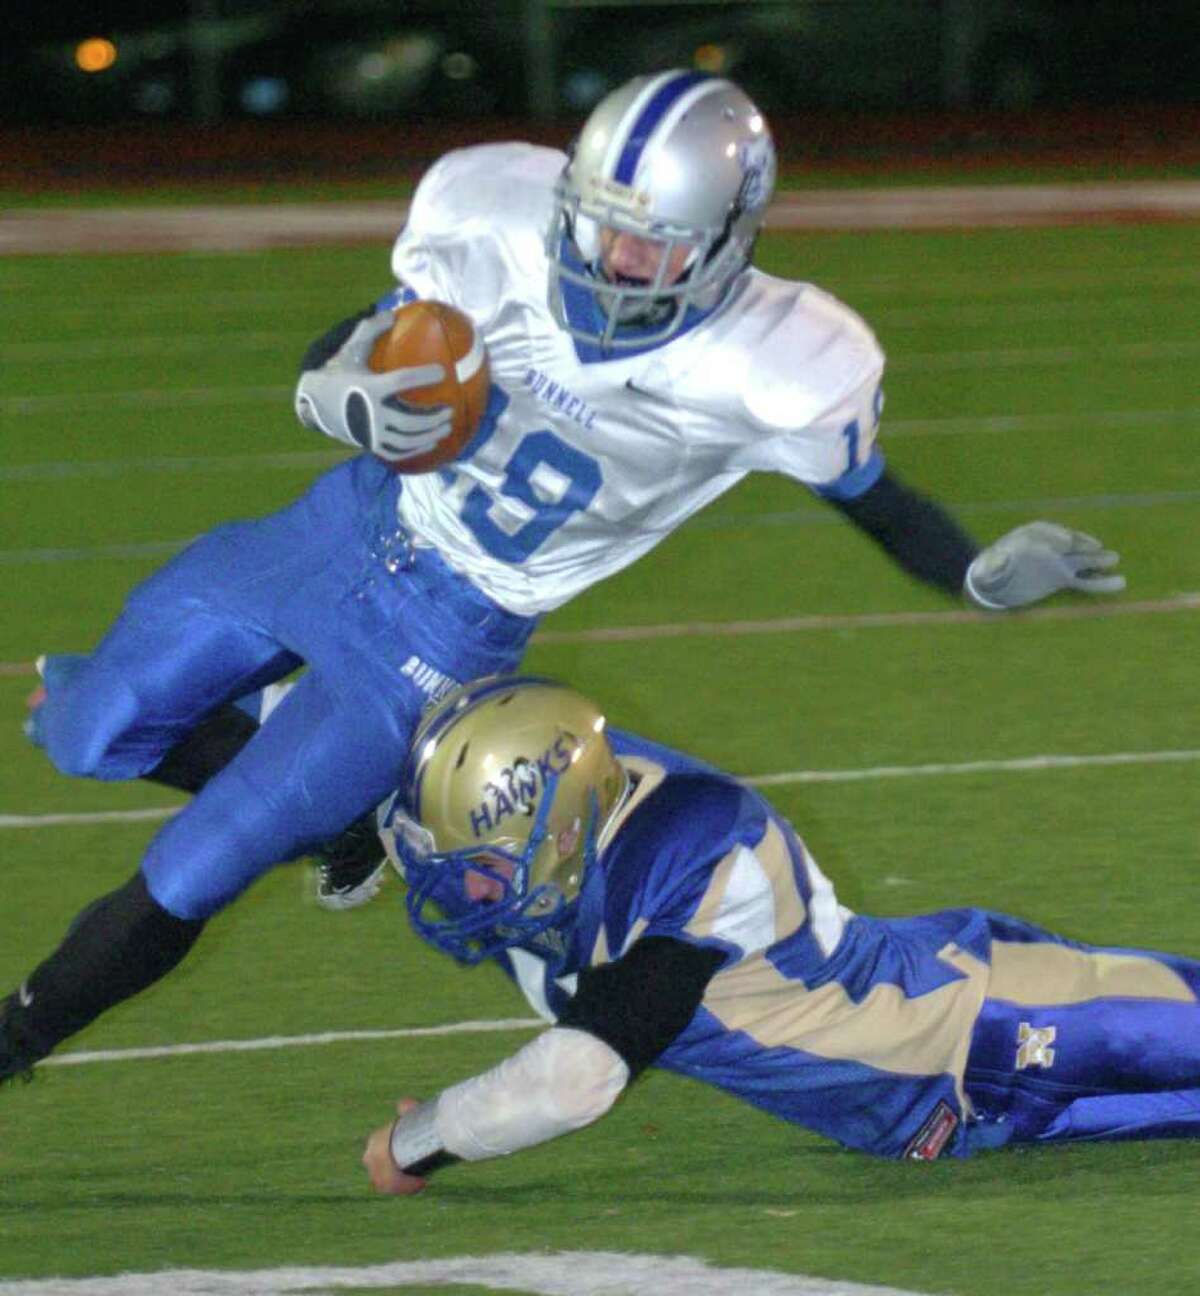 Newtown's 41, Mike Lord tackles Bunnell's 19, Michael Joy, during the football game at Southbury Oct, 22, 2010.